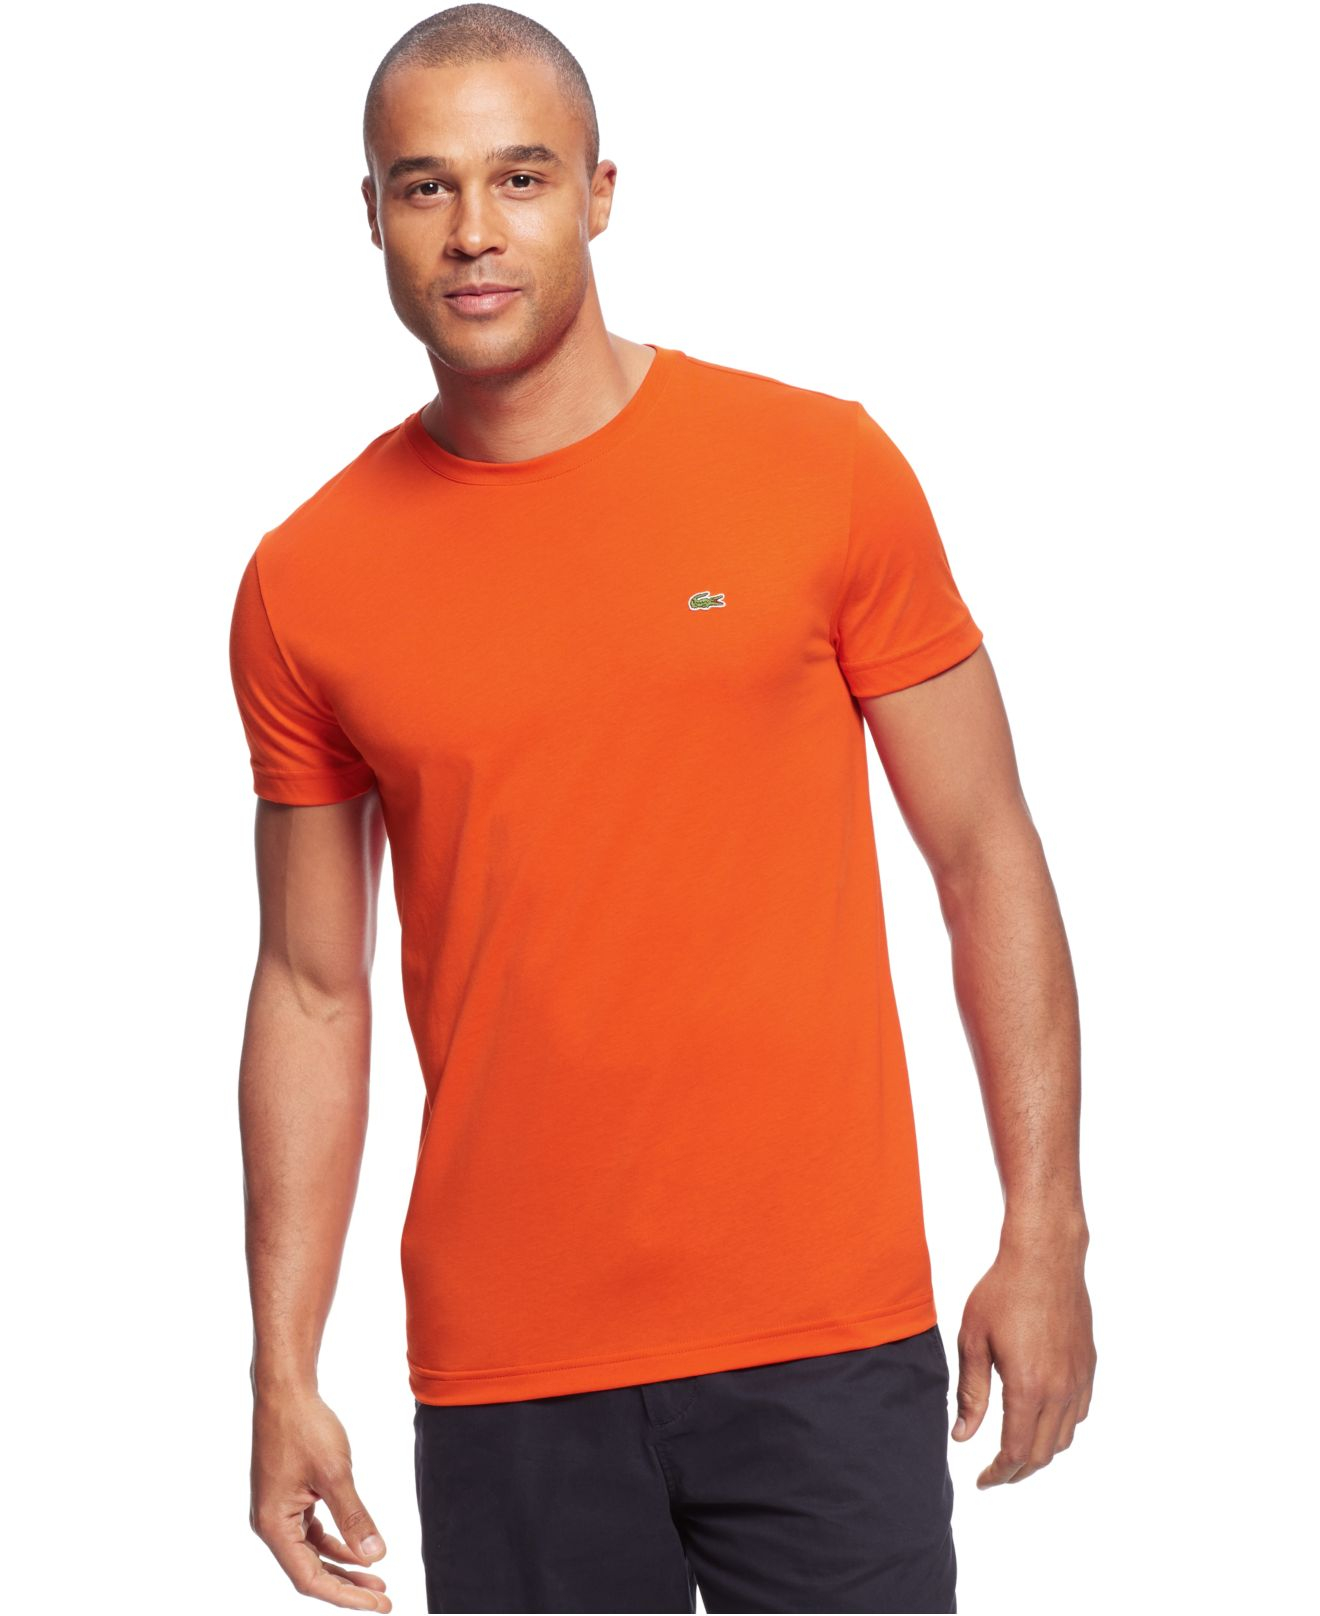 Lacoste big and tall solid crew neck jersey t shirt in for Lacoste big and tall polo shirts